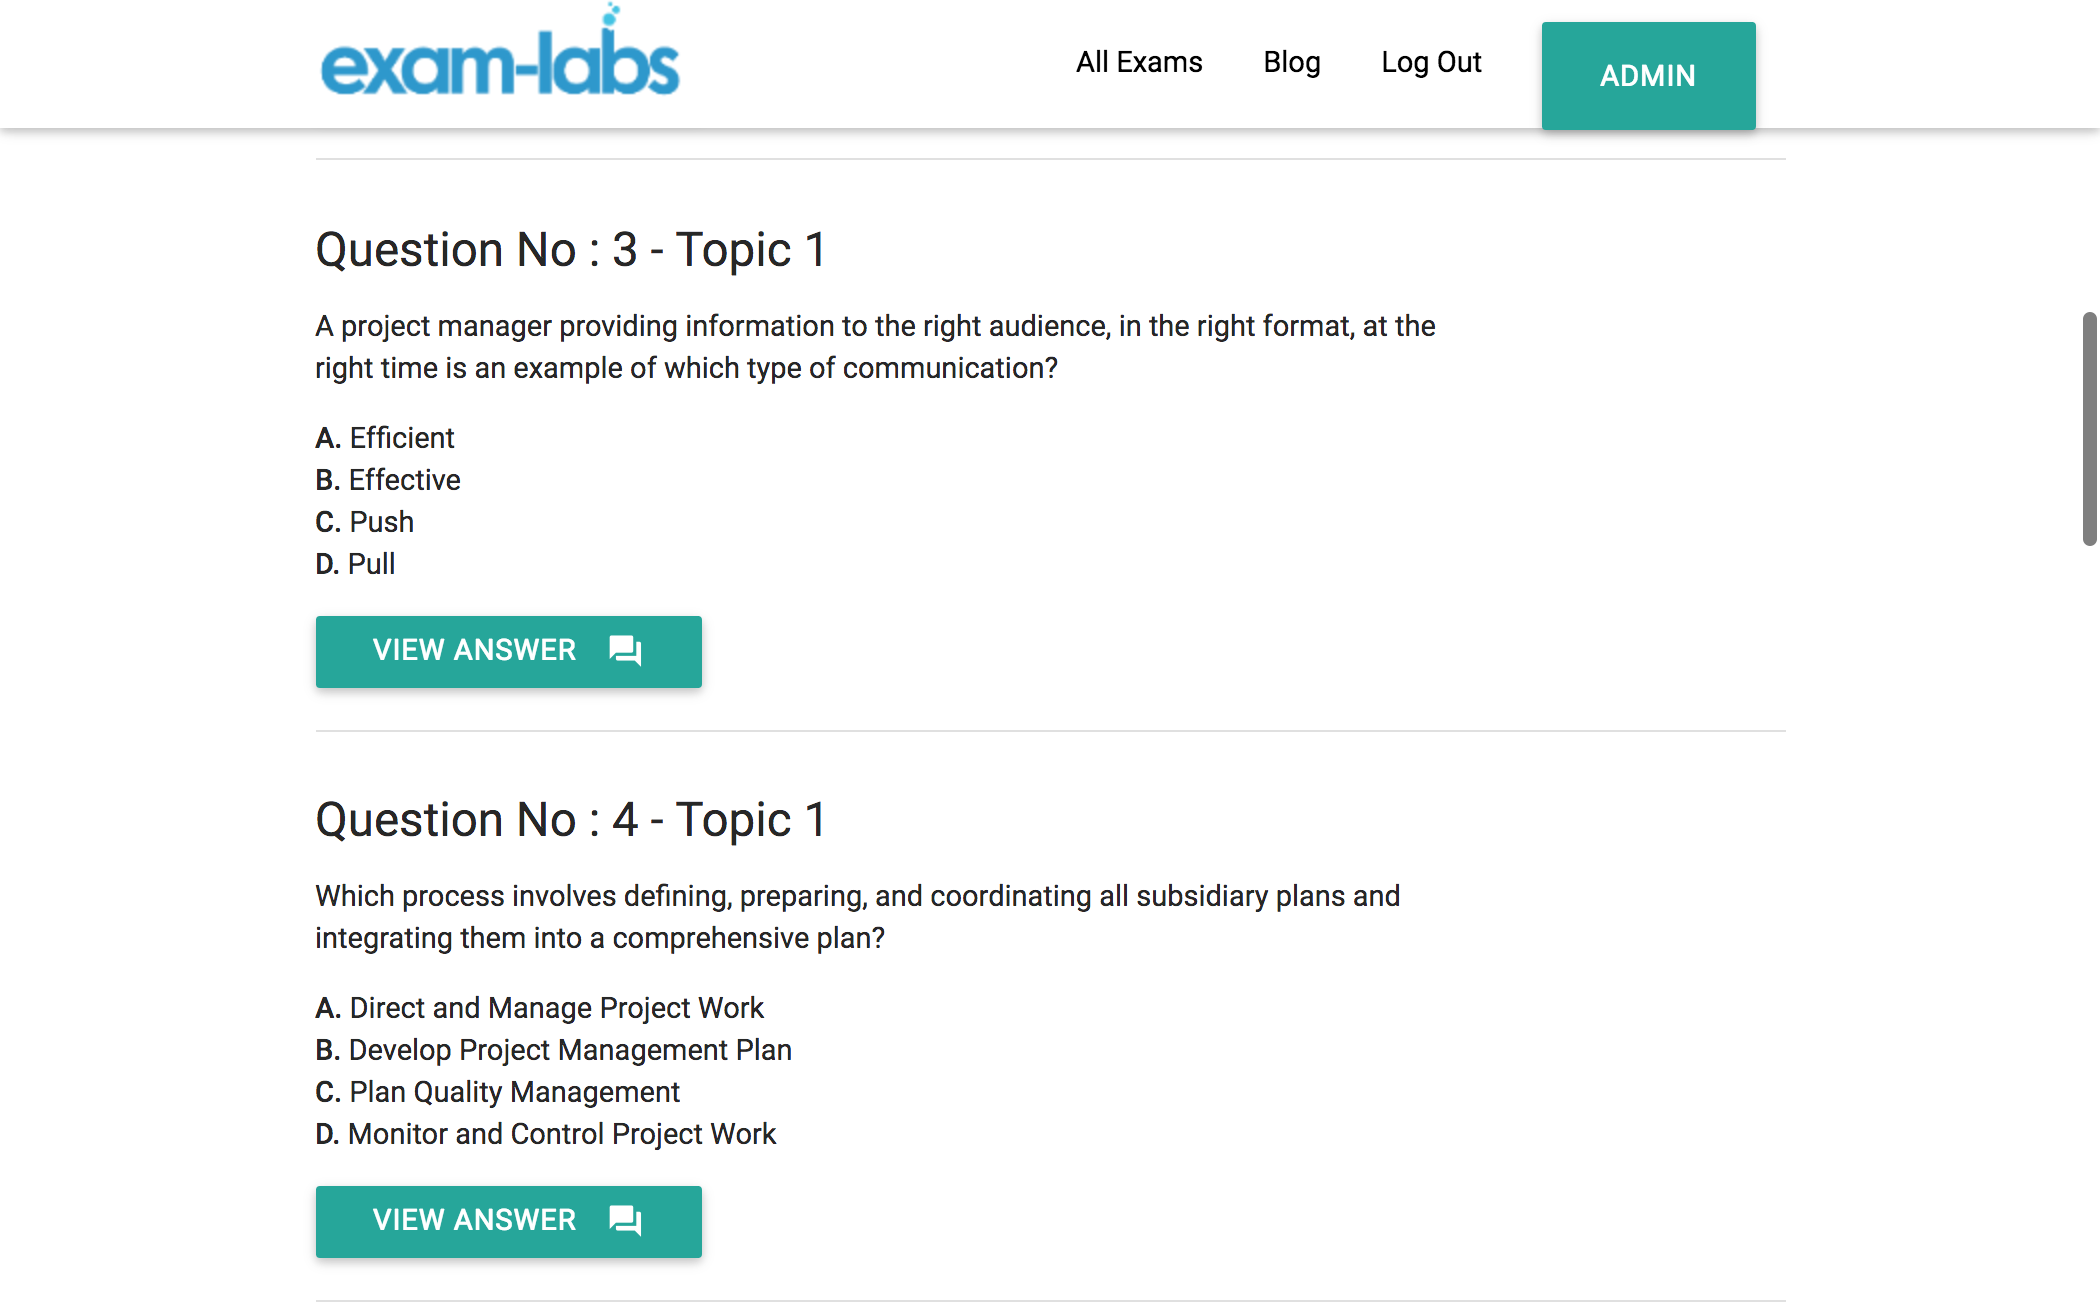 Apm 001 gaqm practice exam questions 100 free exam labs apm 001practiceexam1 apm 001practiceexam2 yelopaper Image collections